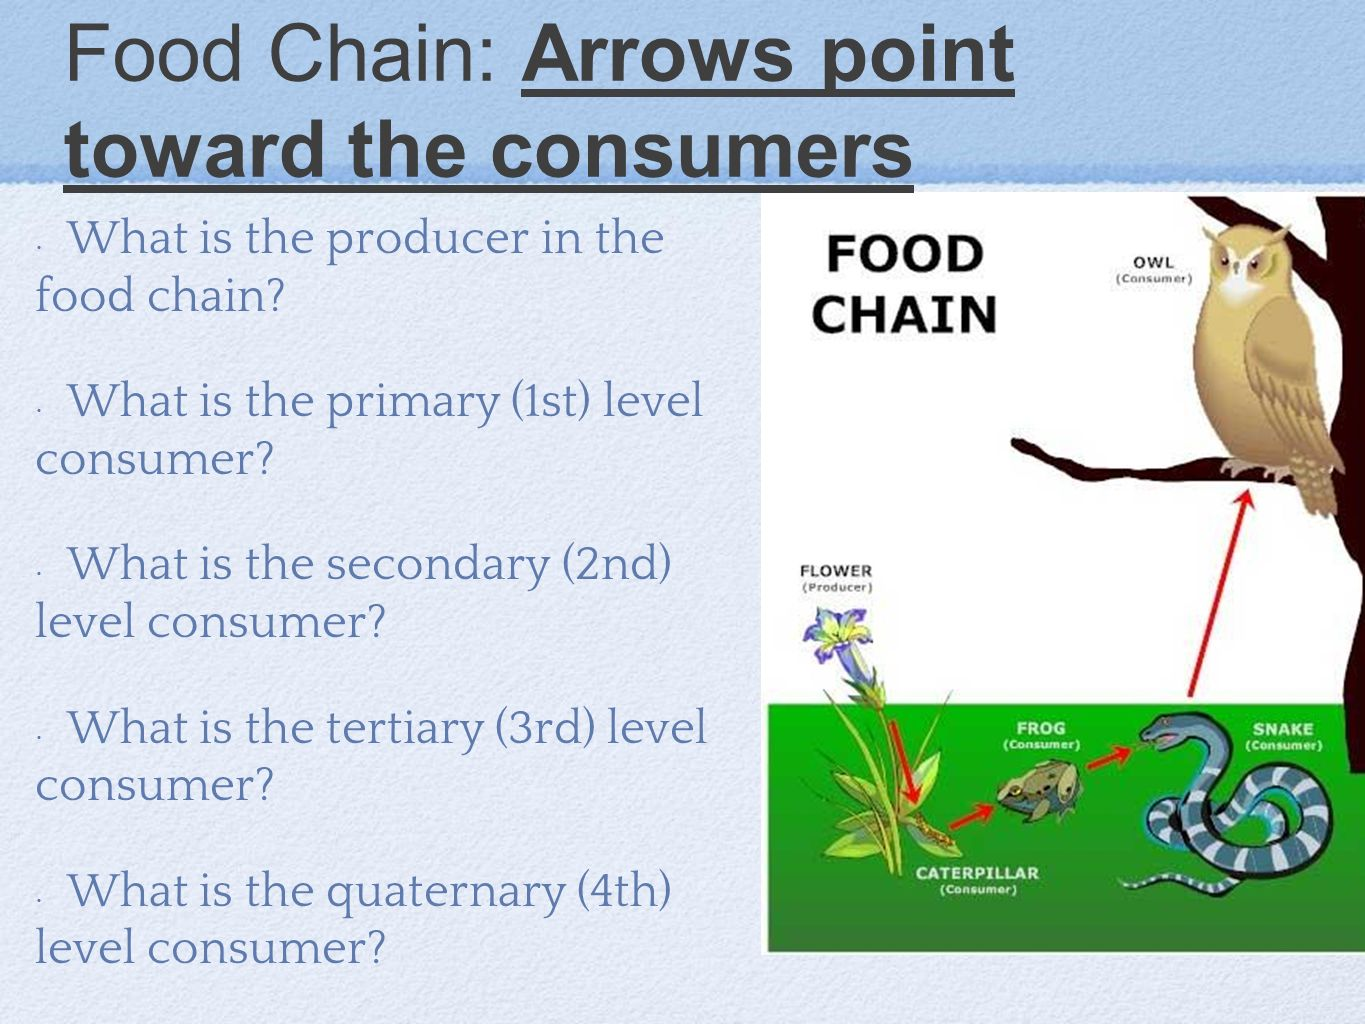 Food Chain: Arrows point toward the consumers